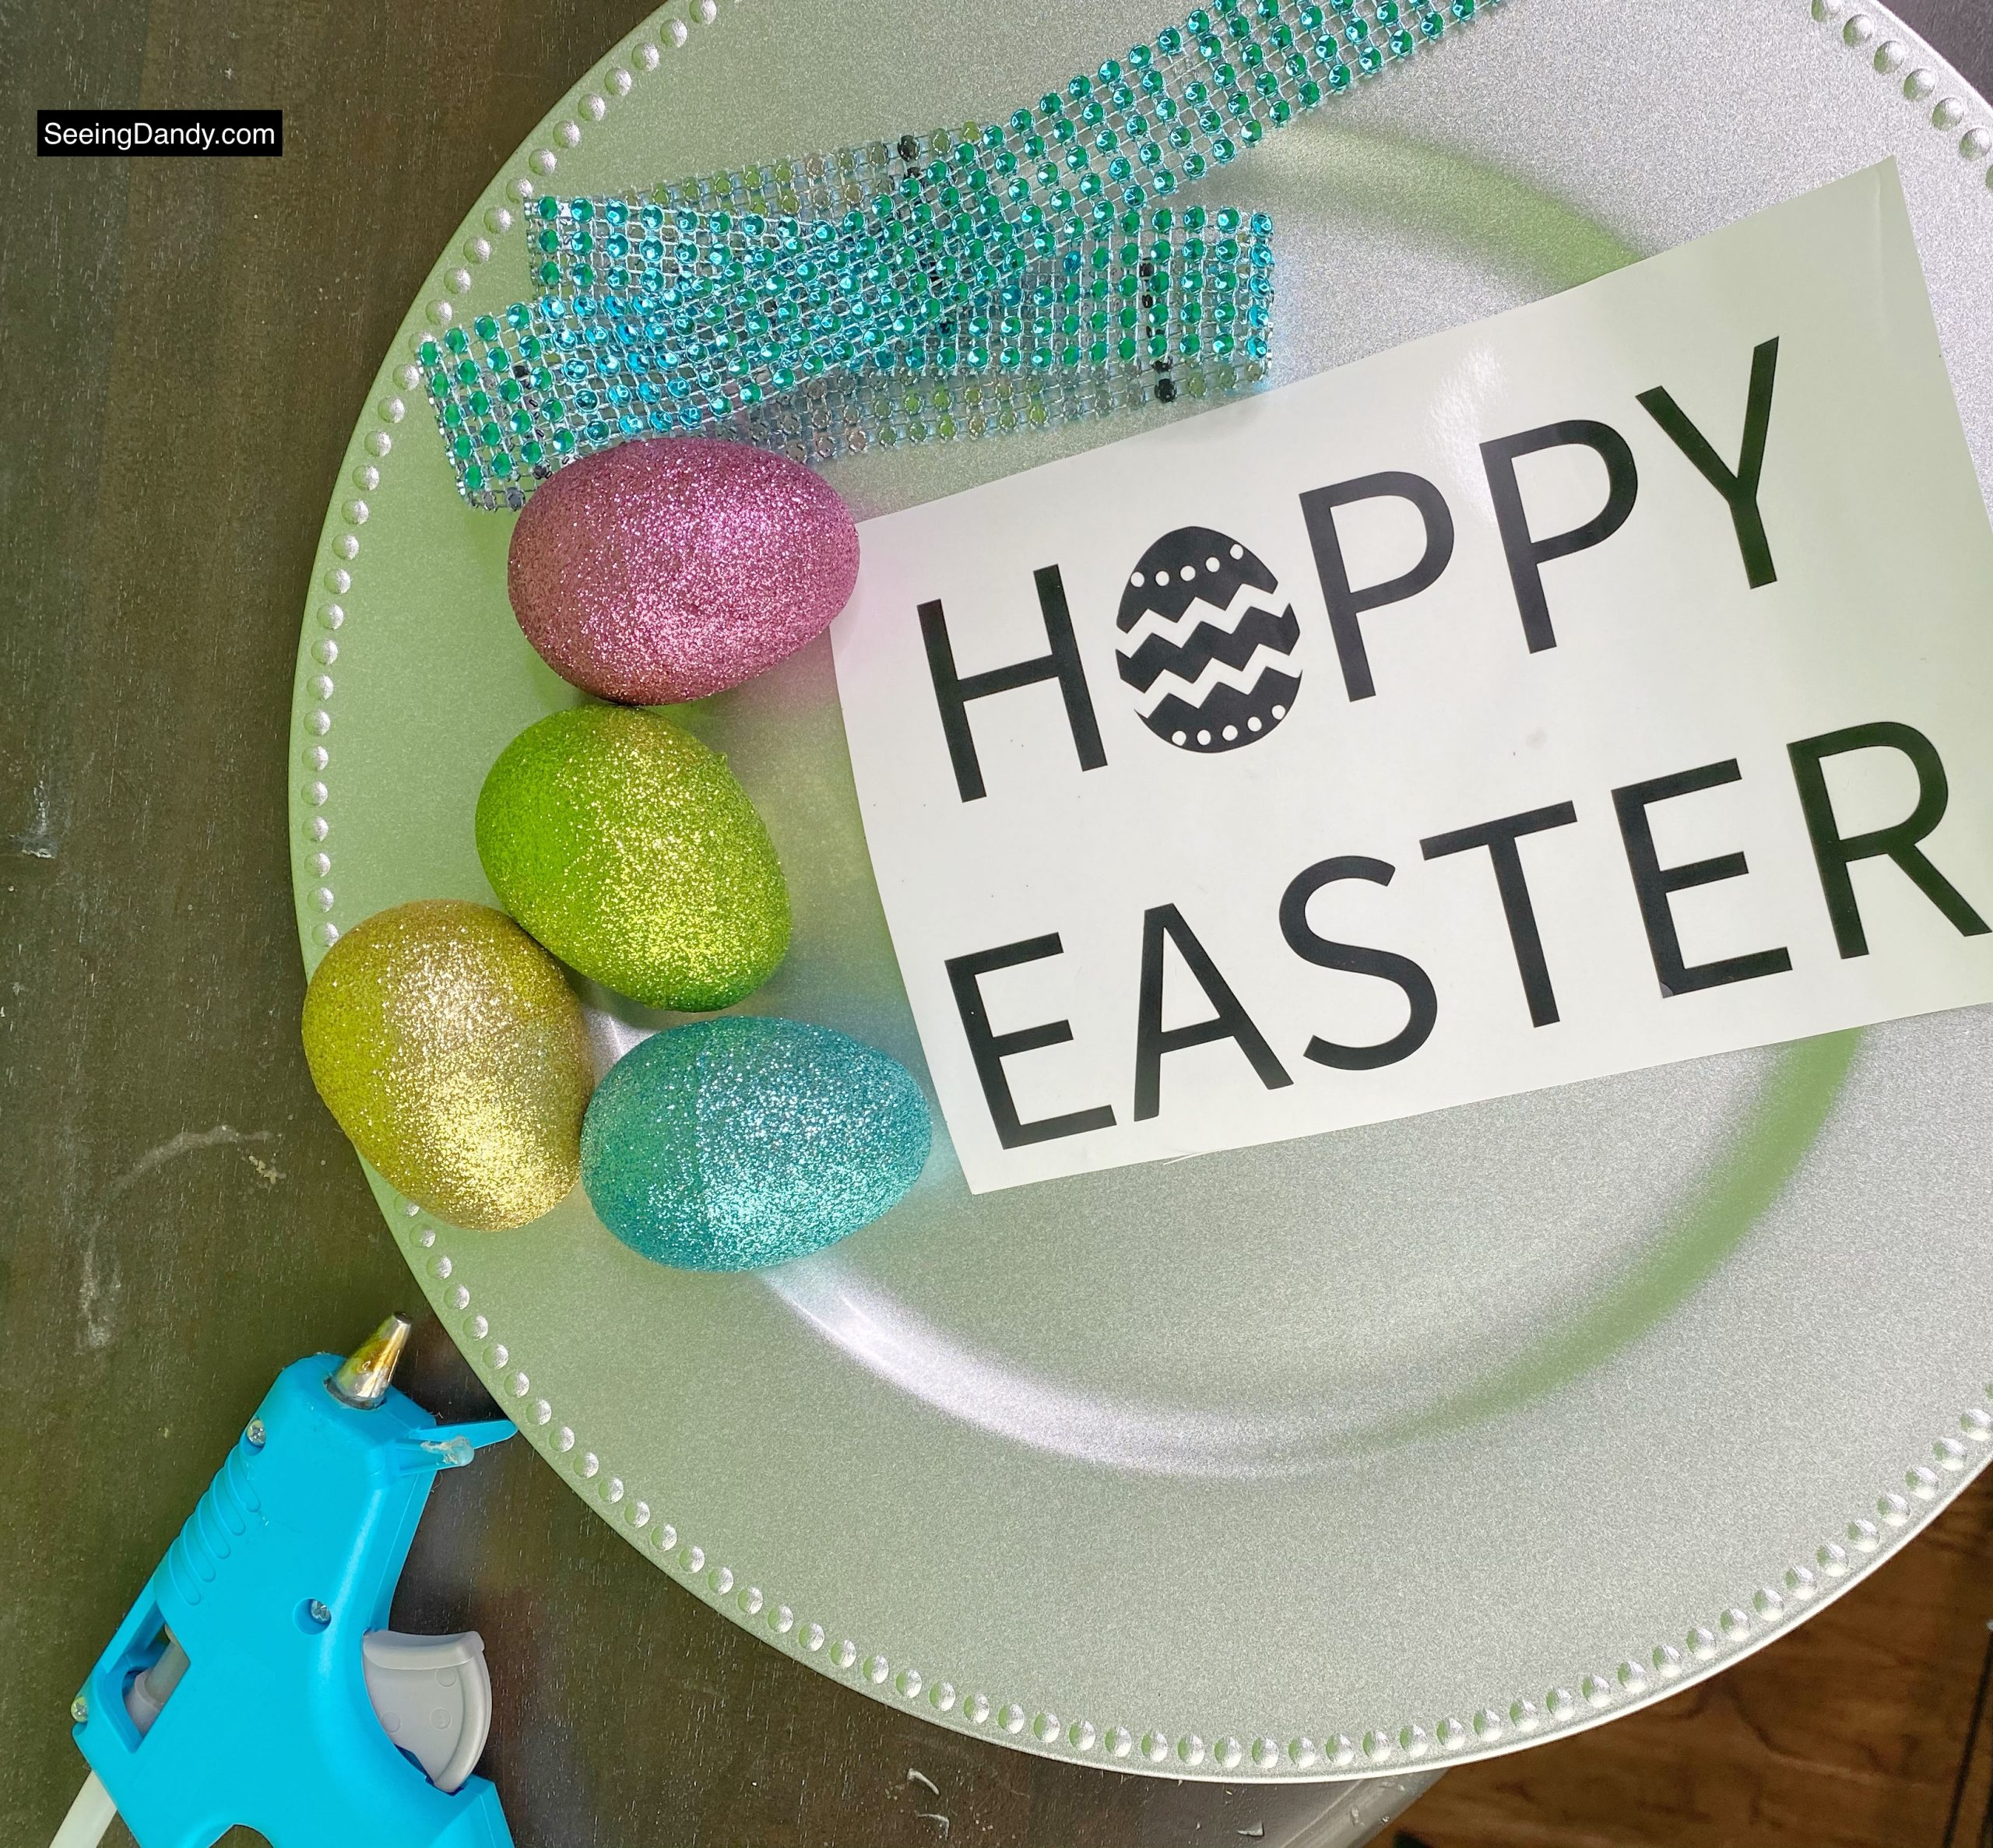 free svg file, dollar tree glitter easter eggs, happy easter svg file, hoppy easter svg file, vinyl craft idea, silver charger plate, dollar tree plastic charger plate, glue gun, teal jeweled ribbon